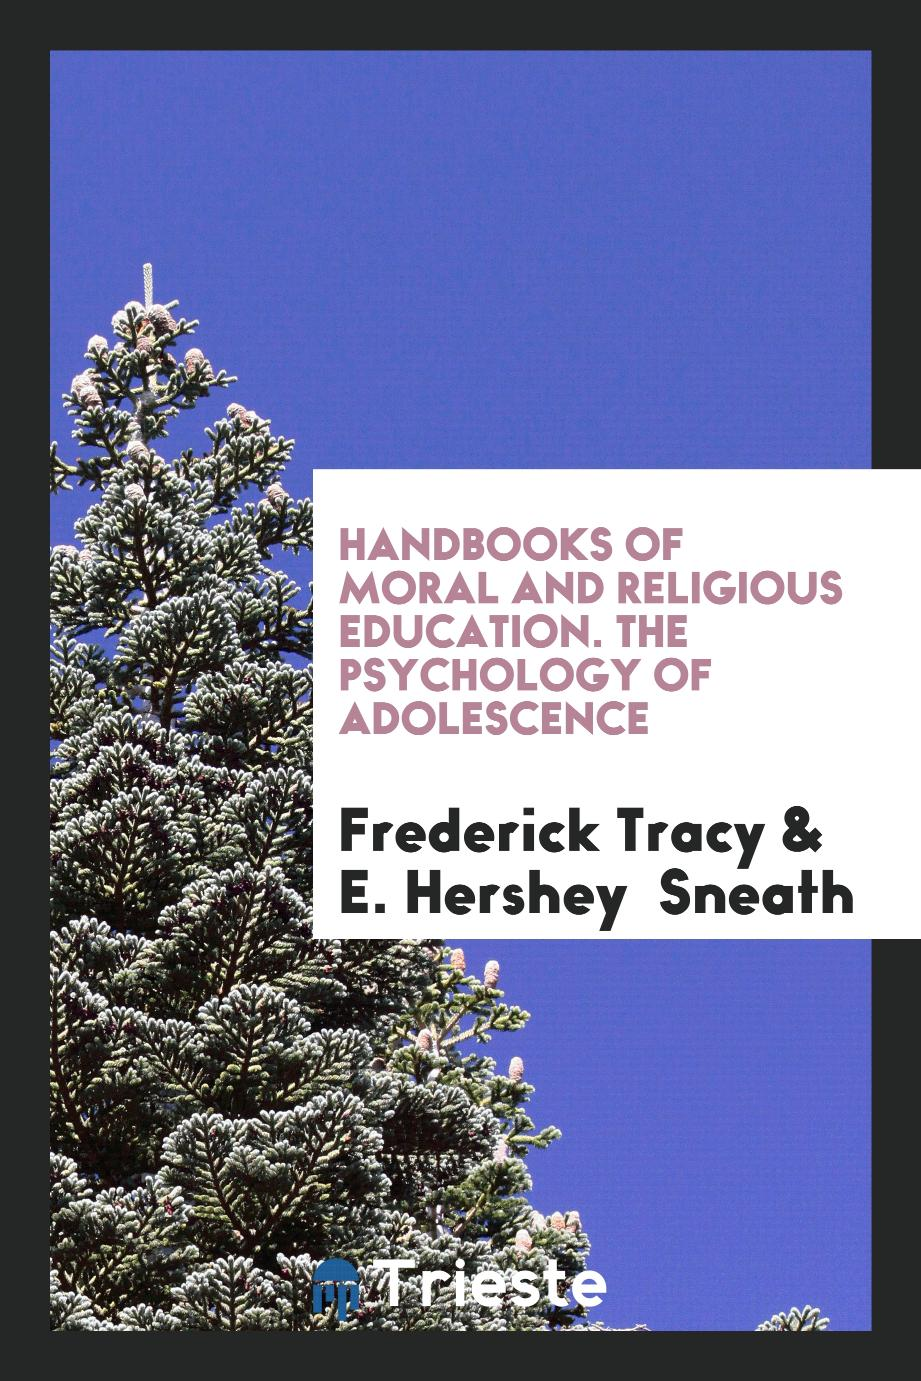 Handbooks of Moral and Religious Education. The Psychology of Adolescence